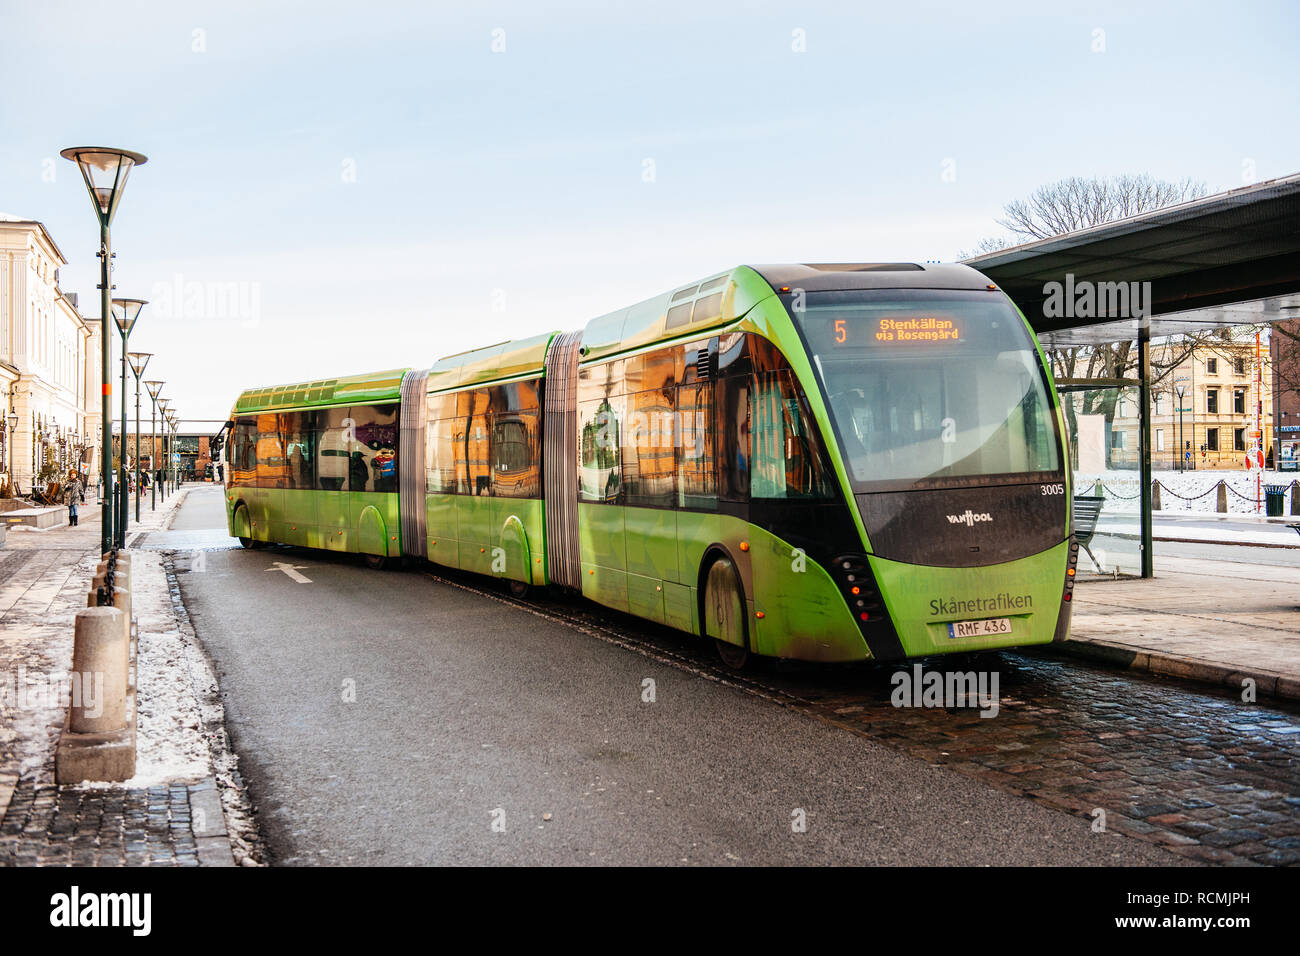 MALMO, SWEDEN - 29 DEC 2014: Modern double articulated bus Van Hool 324H Exequicity 24 Hybrid operated by Skanetrafiken arriving in bus station on a cold winter day - ecologic public transportation line 5 in Malmo  - Stock Image